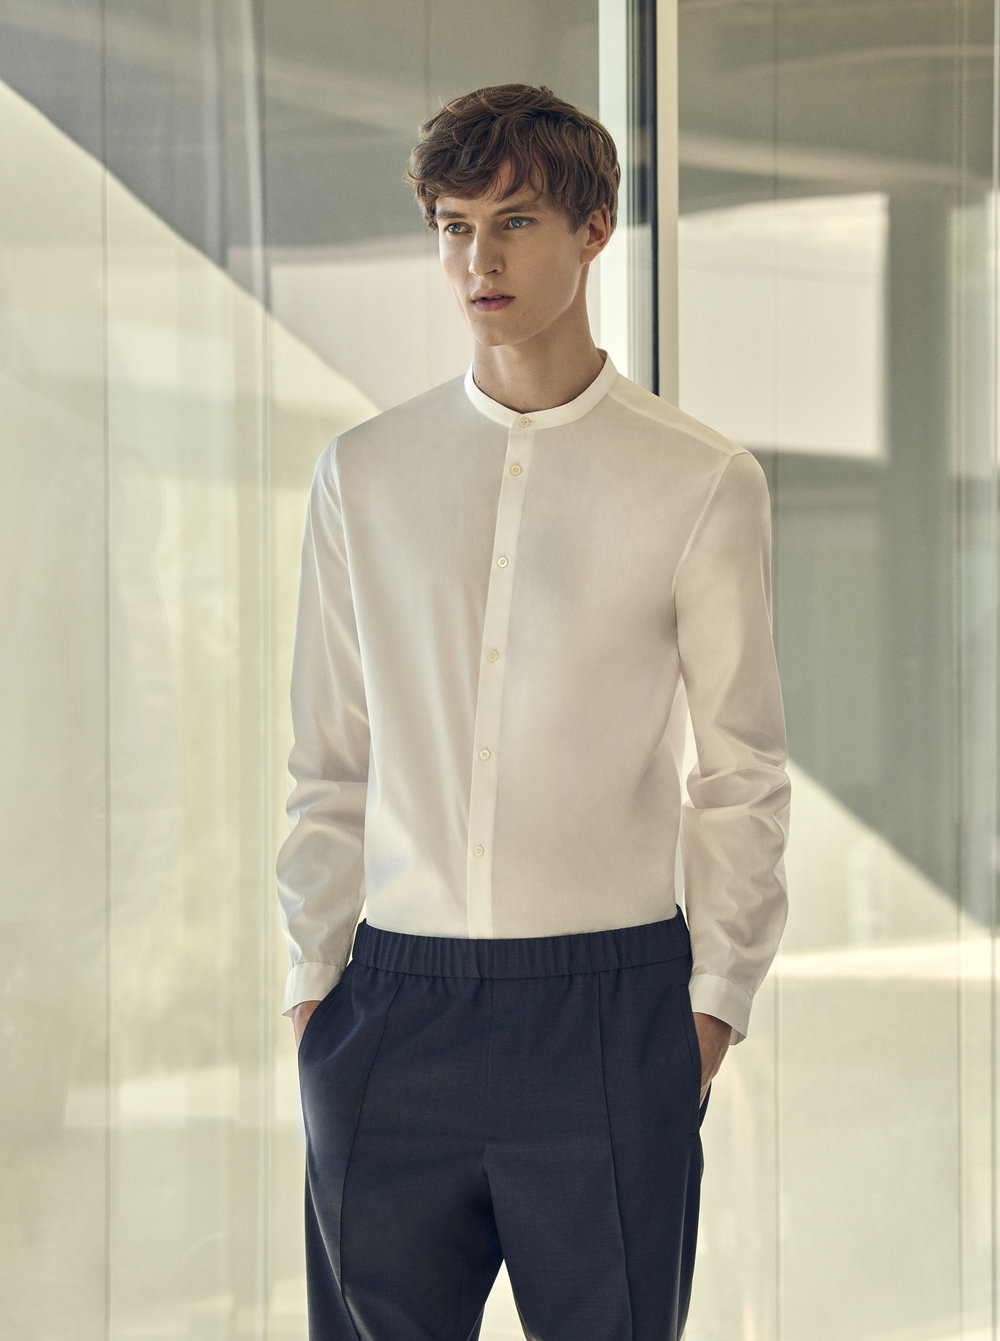 Narrow granddad collar shirt (59€) + Elasticated waist trousers (79€)